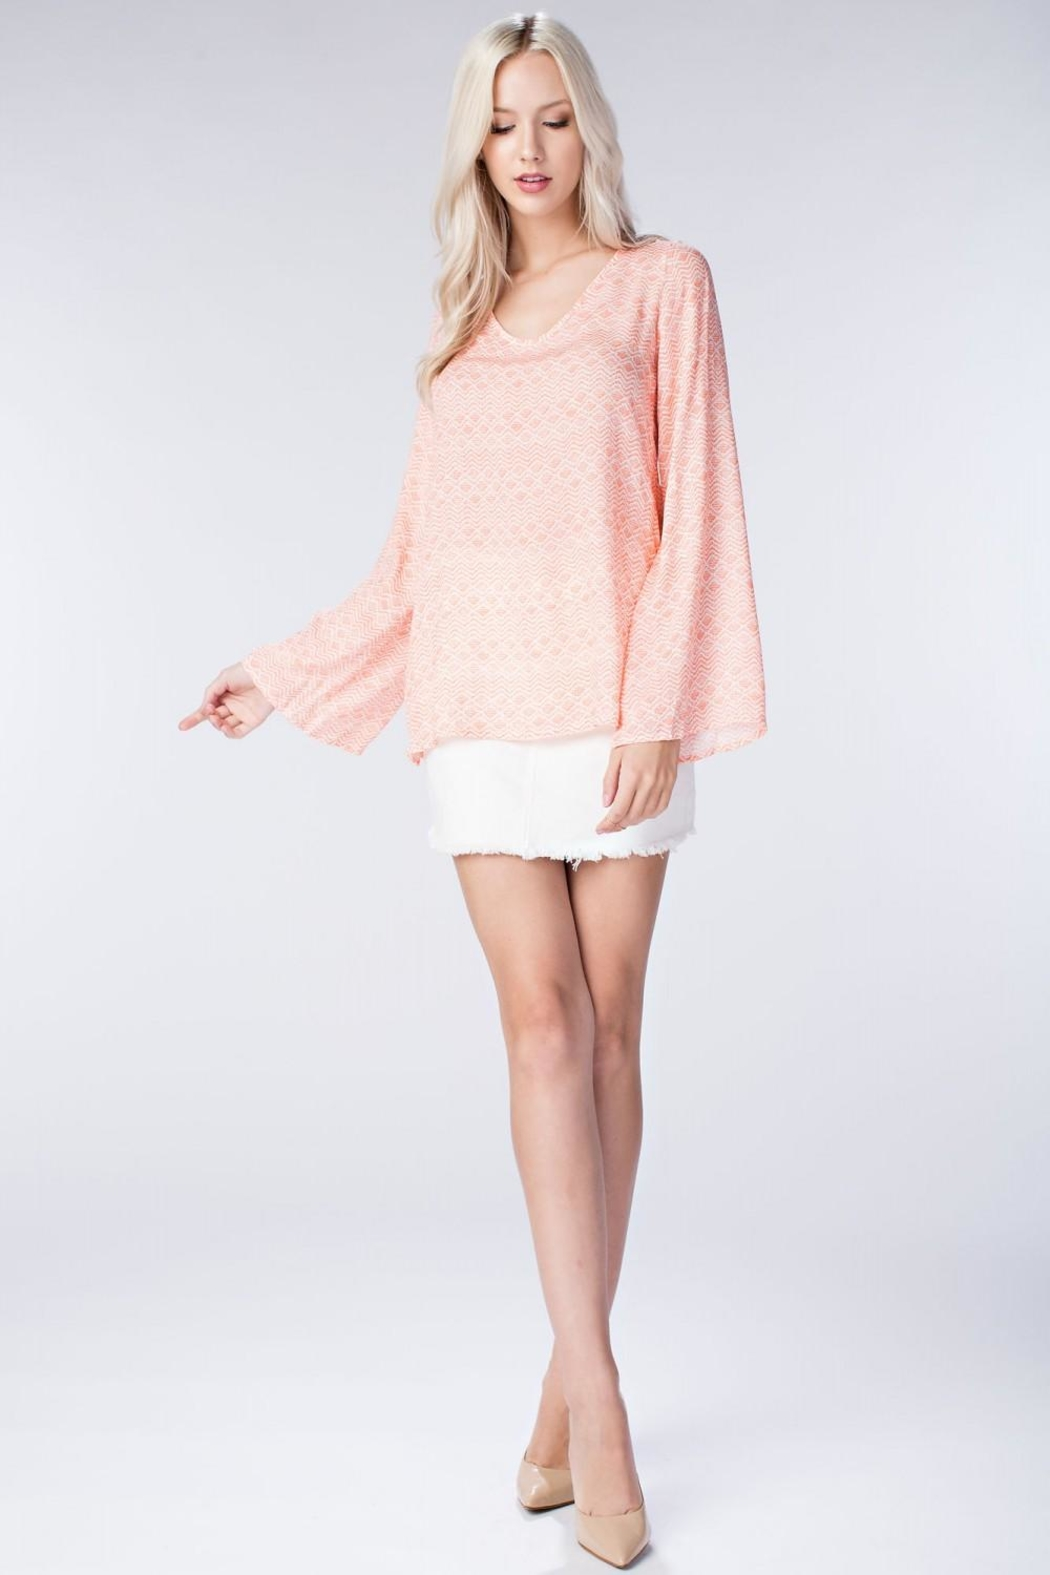 honey belle Coral Breeze Top - Back Cropped Image